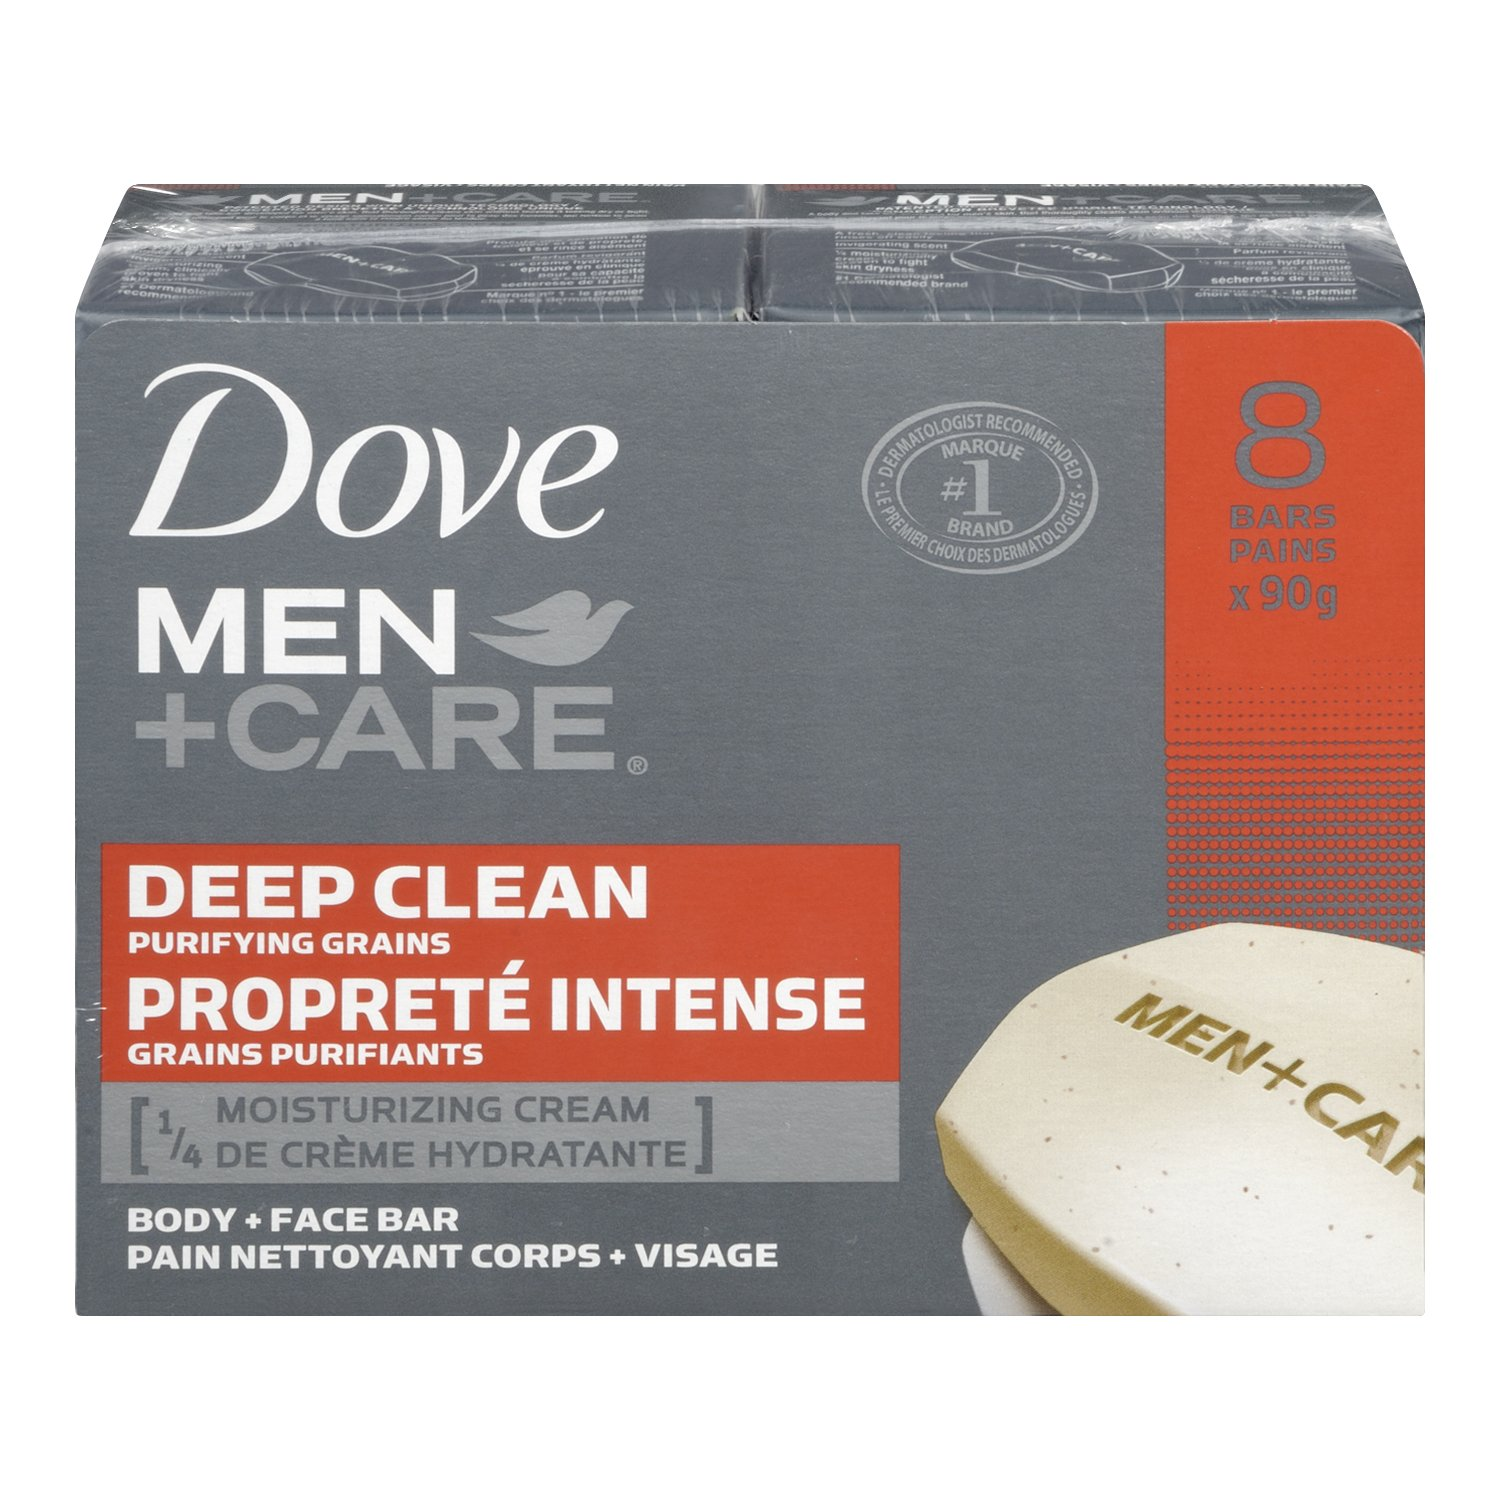 DOVE BAR MENS+CARE Minerals and Sage Bar Soap, 360g Unilever